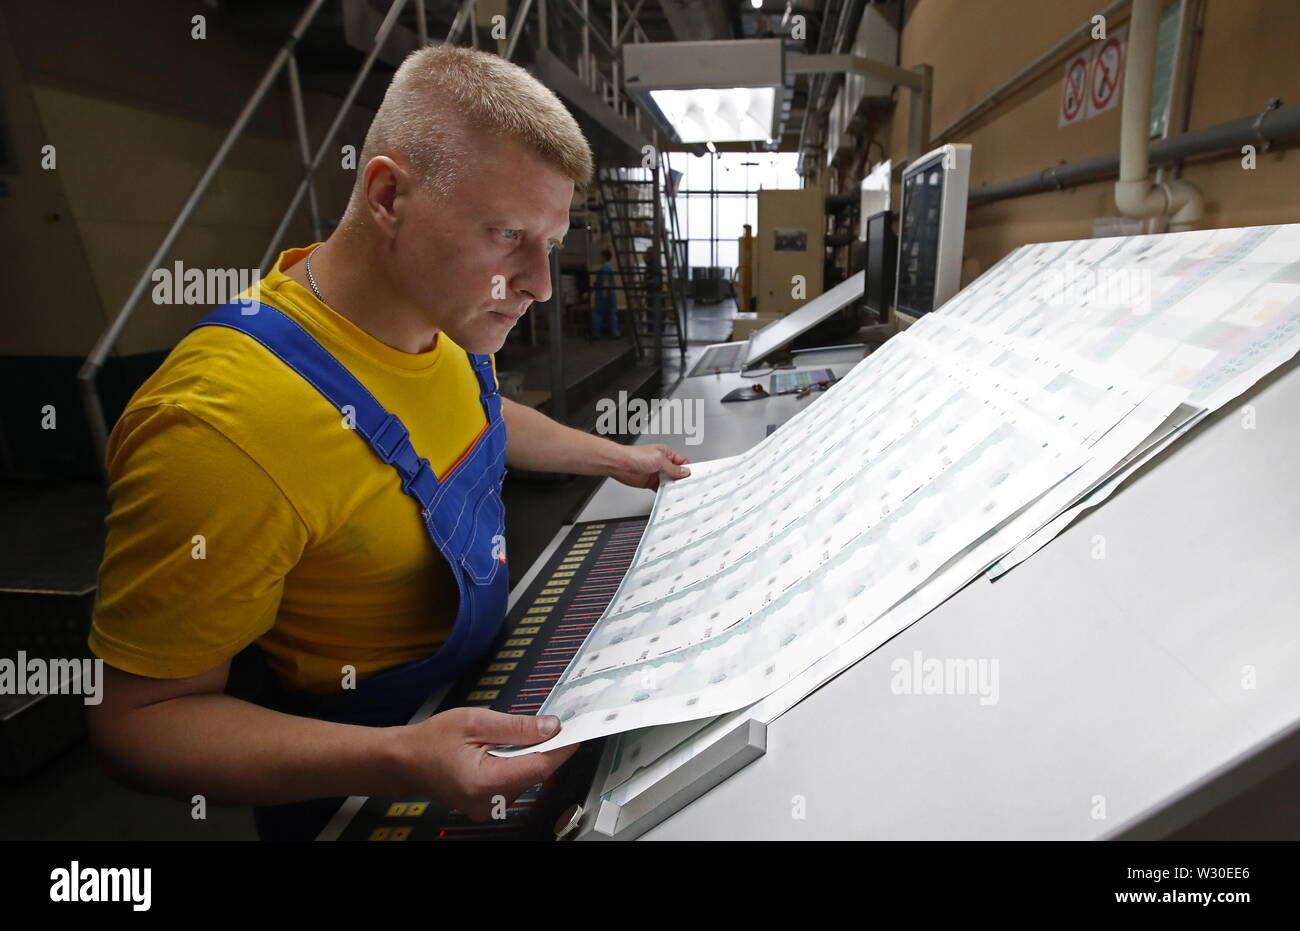 Moscow, Russia. 11th July, 2019. MOSCOW, RUSSIA - JULY 11, 2019: Making Russian 1,000-rouble banknotes at the Moscow Printing Factory owned by Goznak; the enterprise and its branch both celebrating their centenaries in 2019. Artyom Geodakyan/TASS Credit: ITAR-TASS News Agency/Alamy Live News - Stock Image